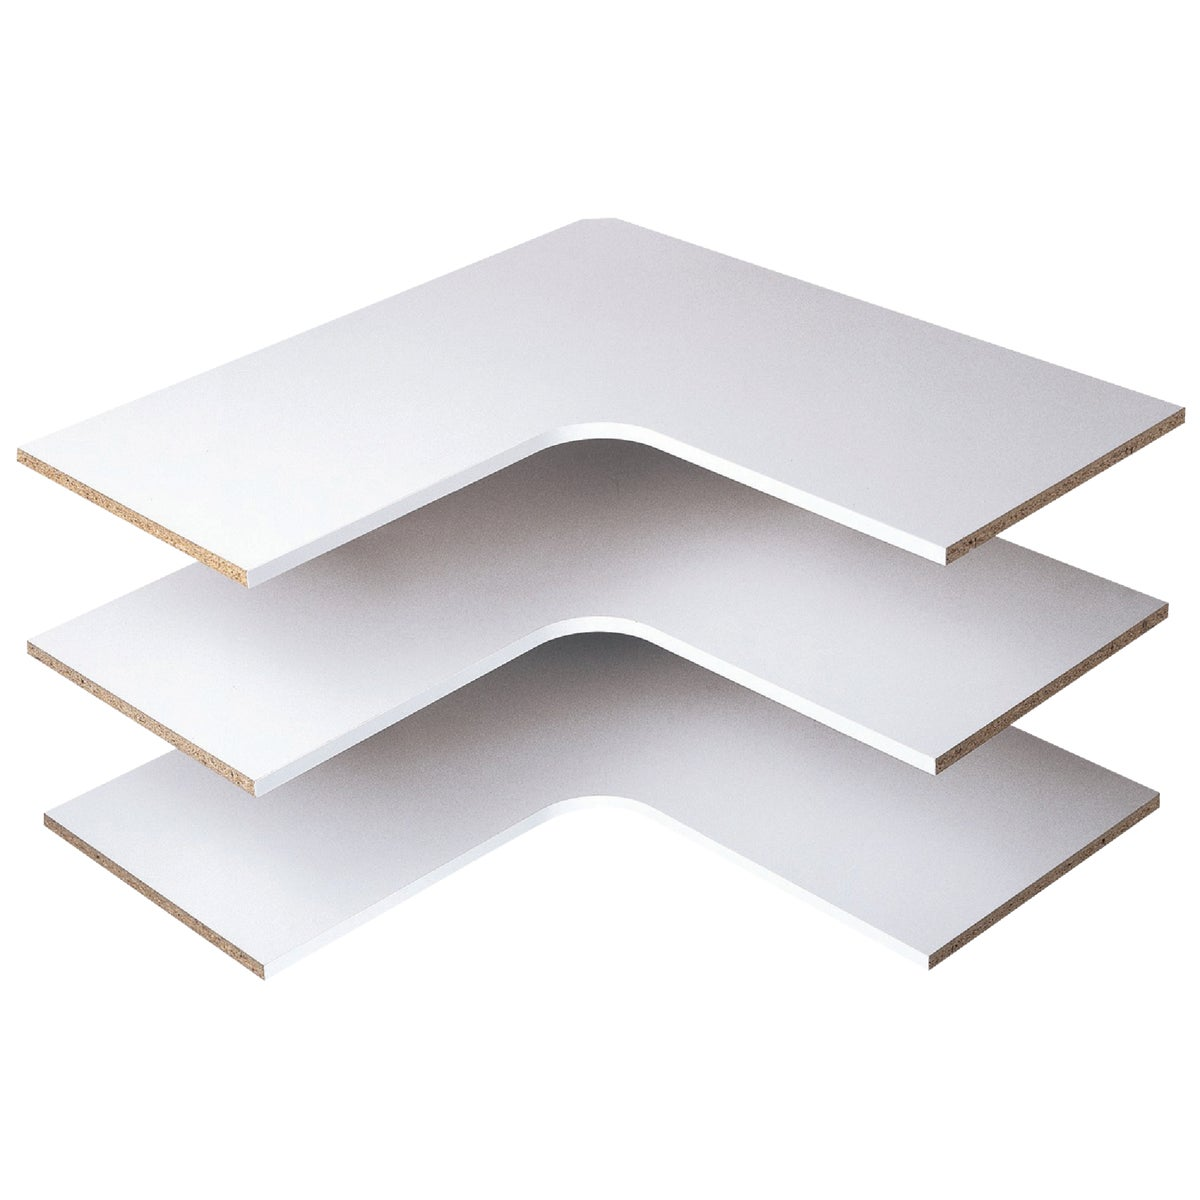 3PK CORNER SHELVES - RS3003 by The Stow Company